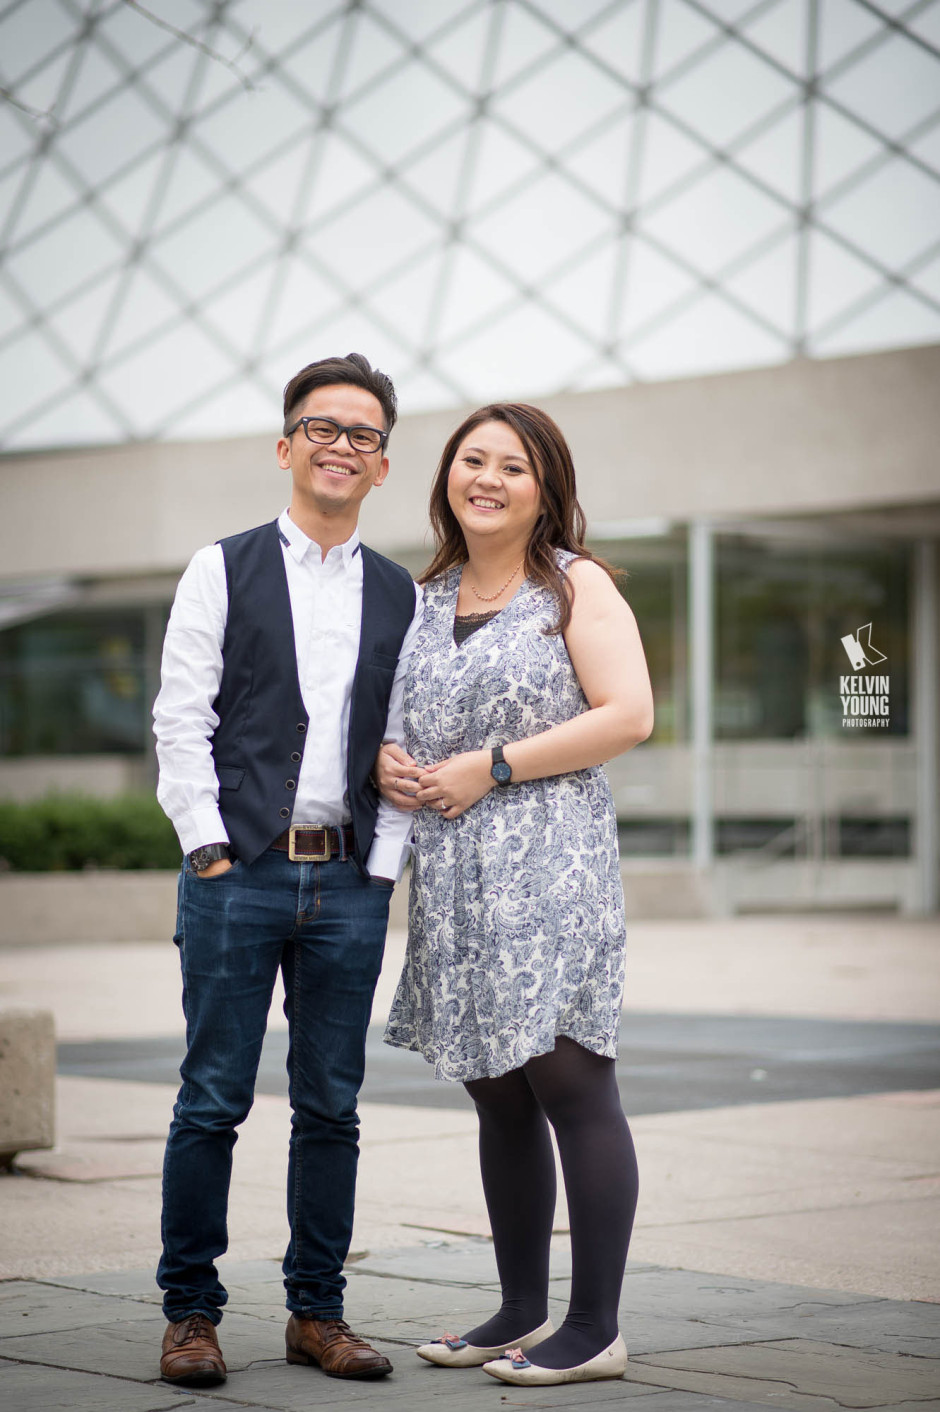 KYP15-Miranda-Wylie-Toronto-Engagement-Photography-Session-12